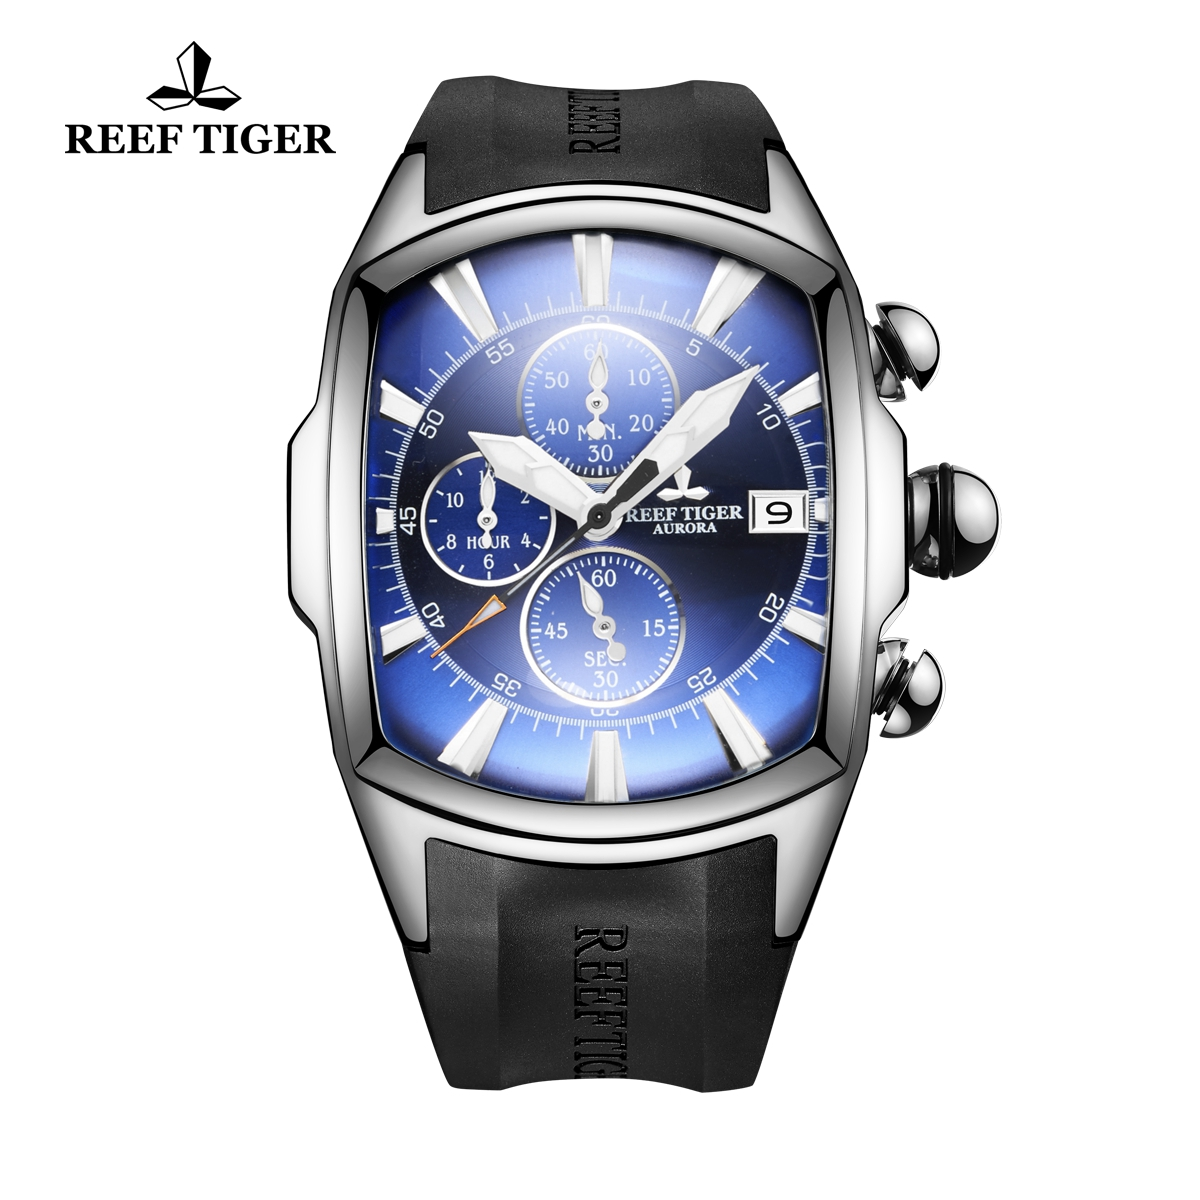 Reef Tiger Tank Men's Watch Steel Black Rubber Strap Blue Dial Quartz Watch RGA3069-T-YLB